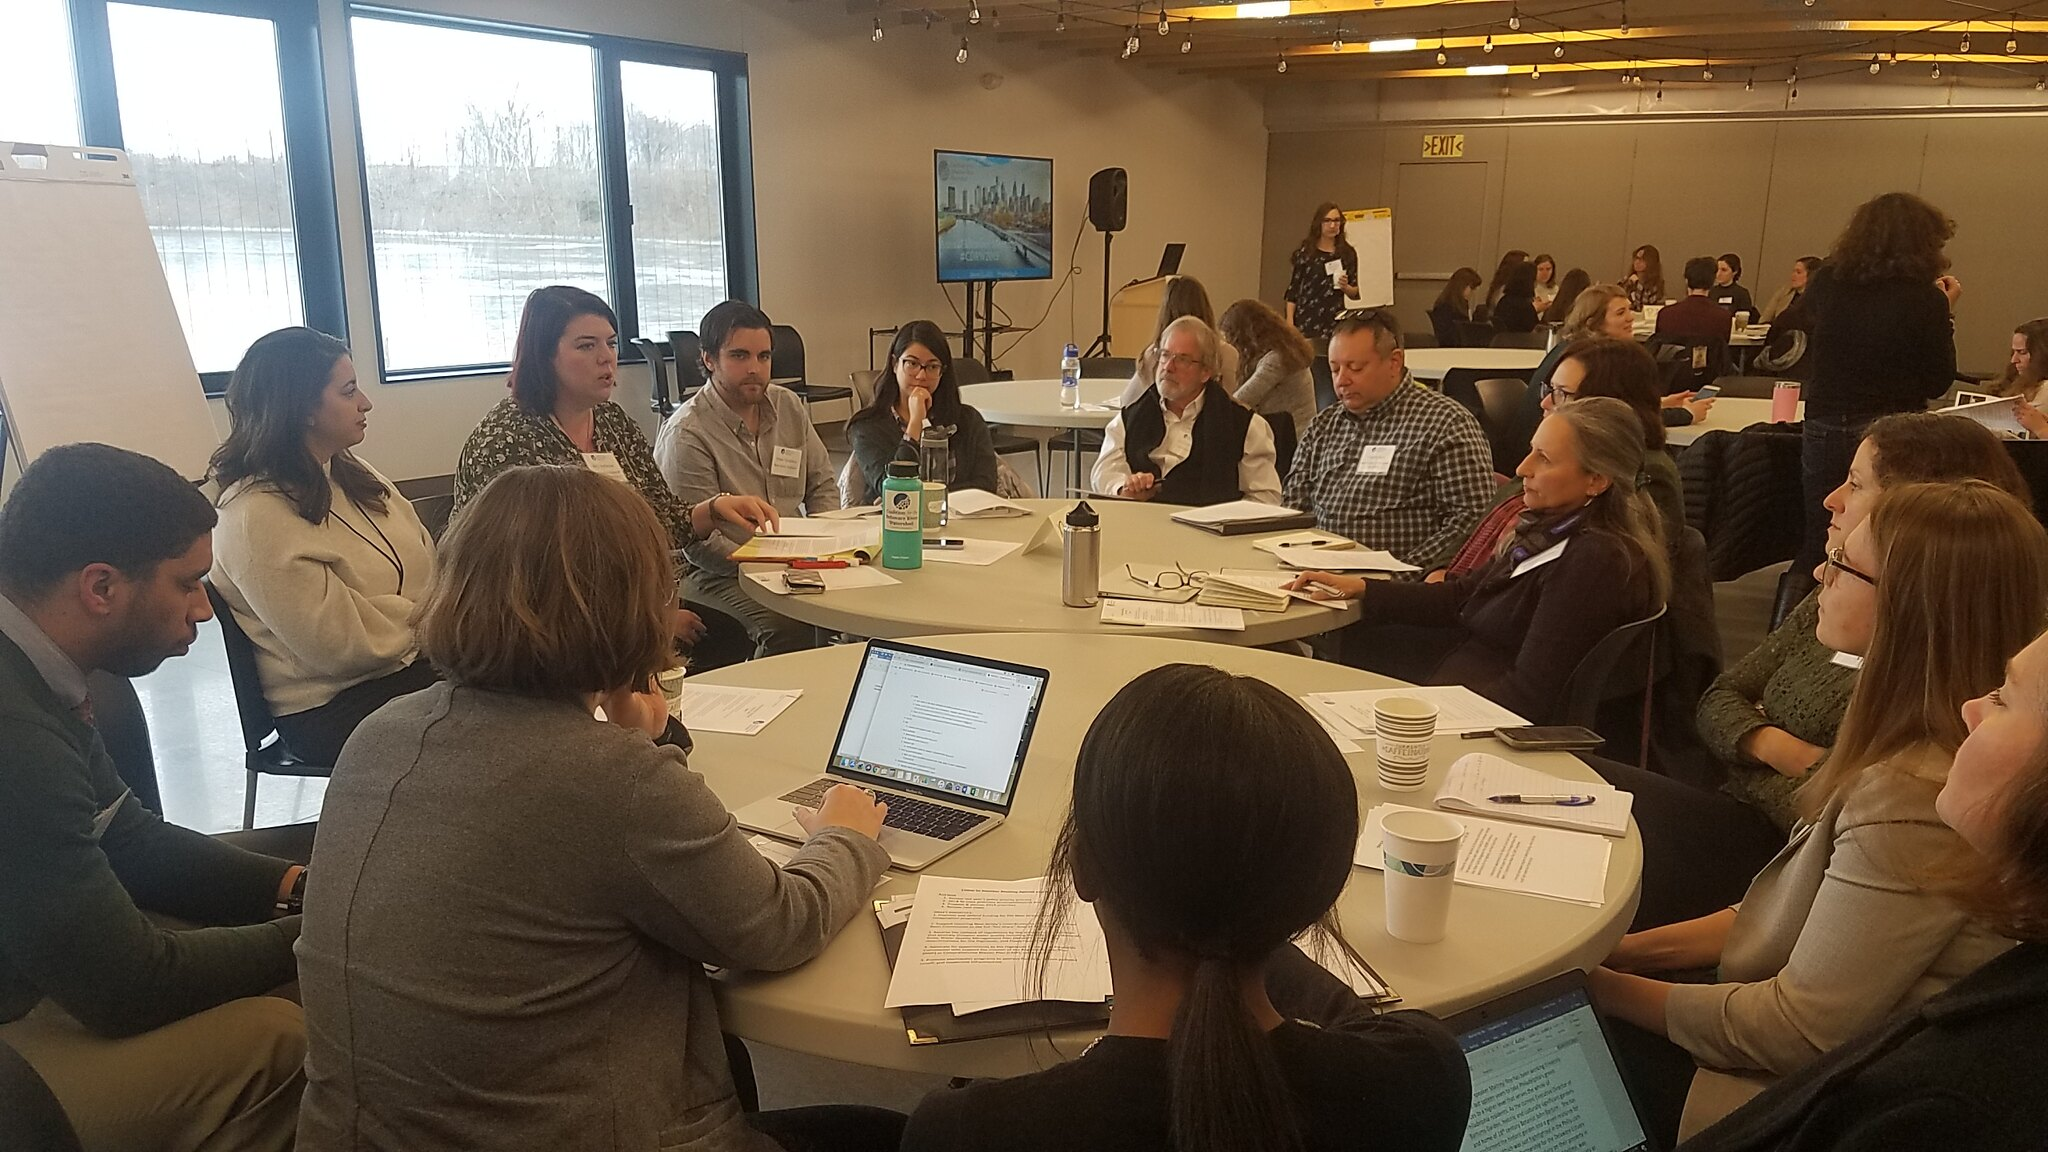 New Jersey members meet at the Coalition's annual meeting in January 2019 to discuss state priorities.